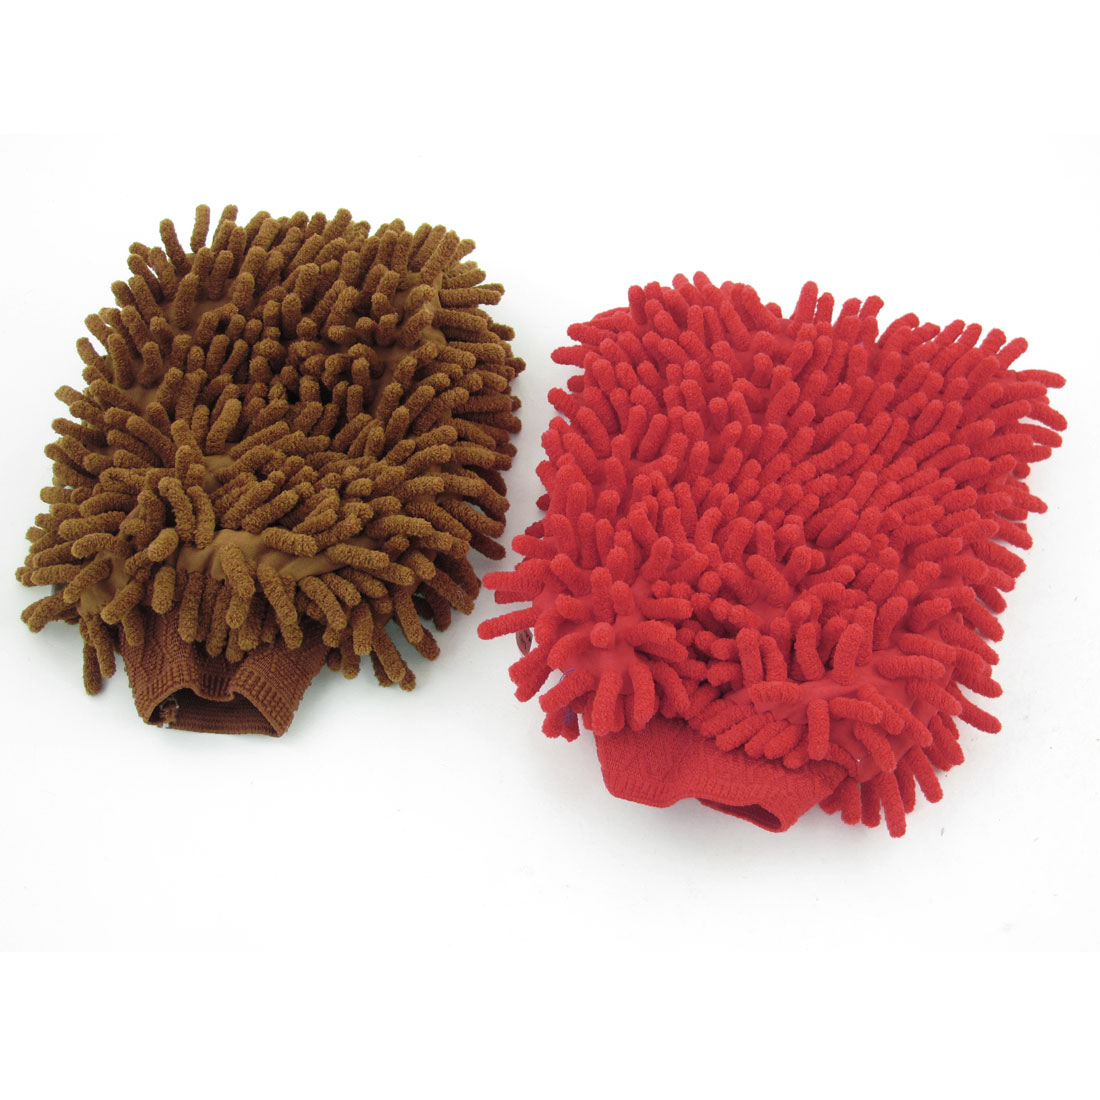 2 Pcs Protective Dual Sides Stretchy Microfiber Car Wash Glove Anti Scratch w Elastic Cuff Red Coffee Color